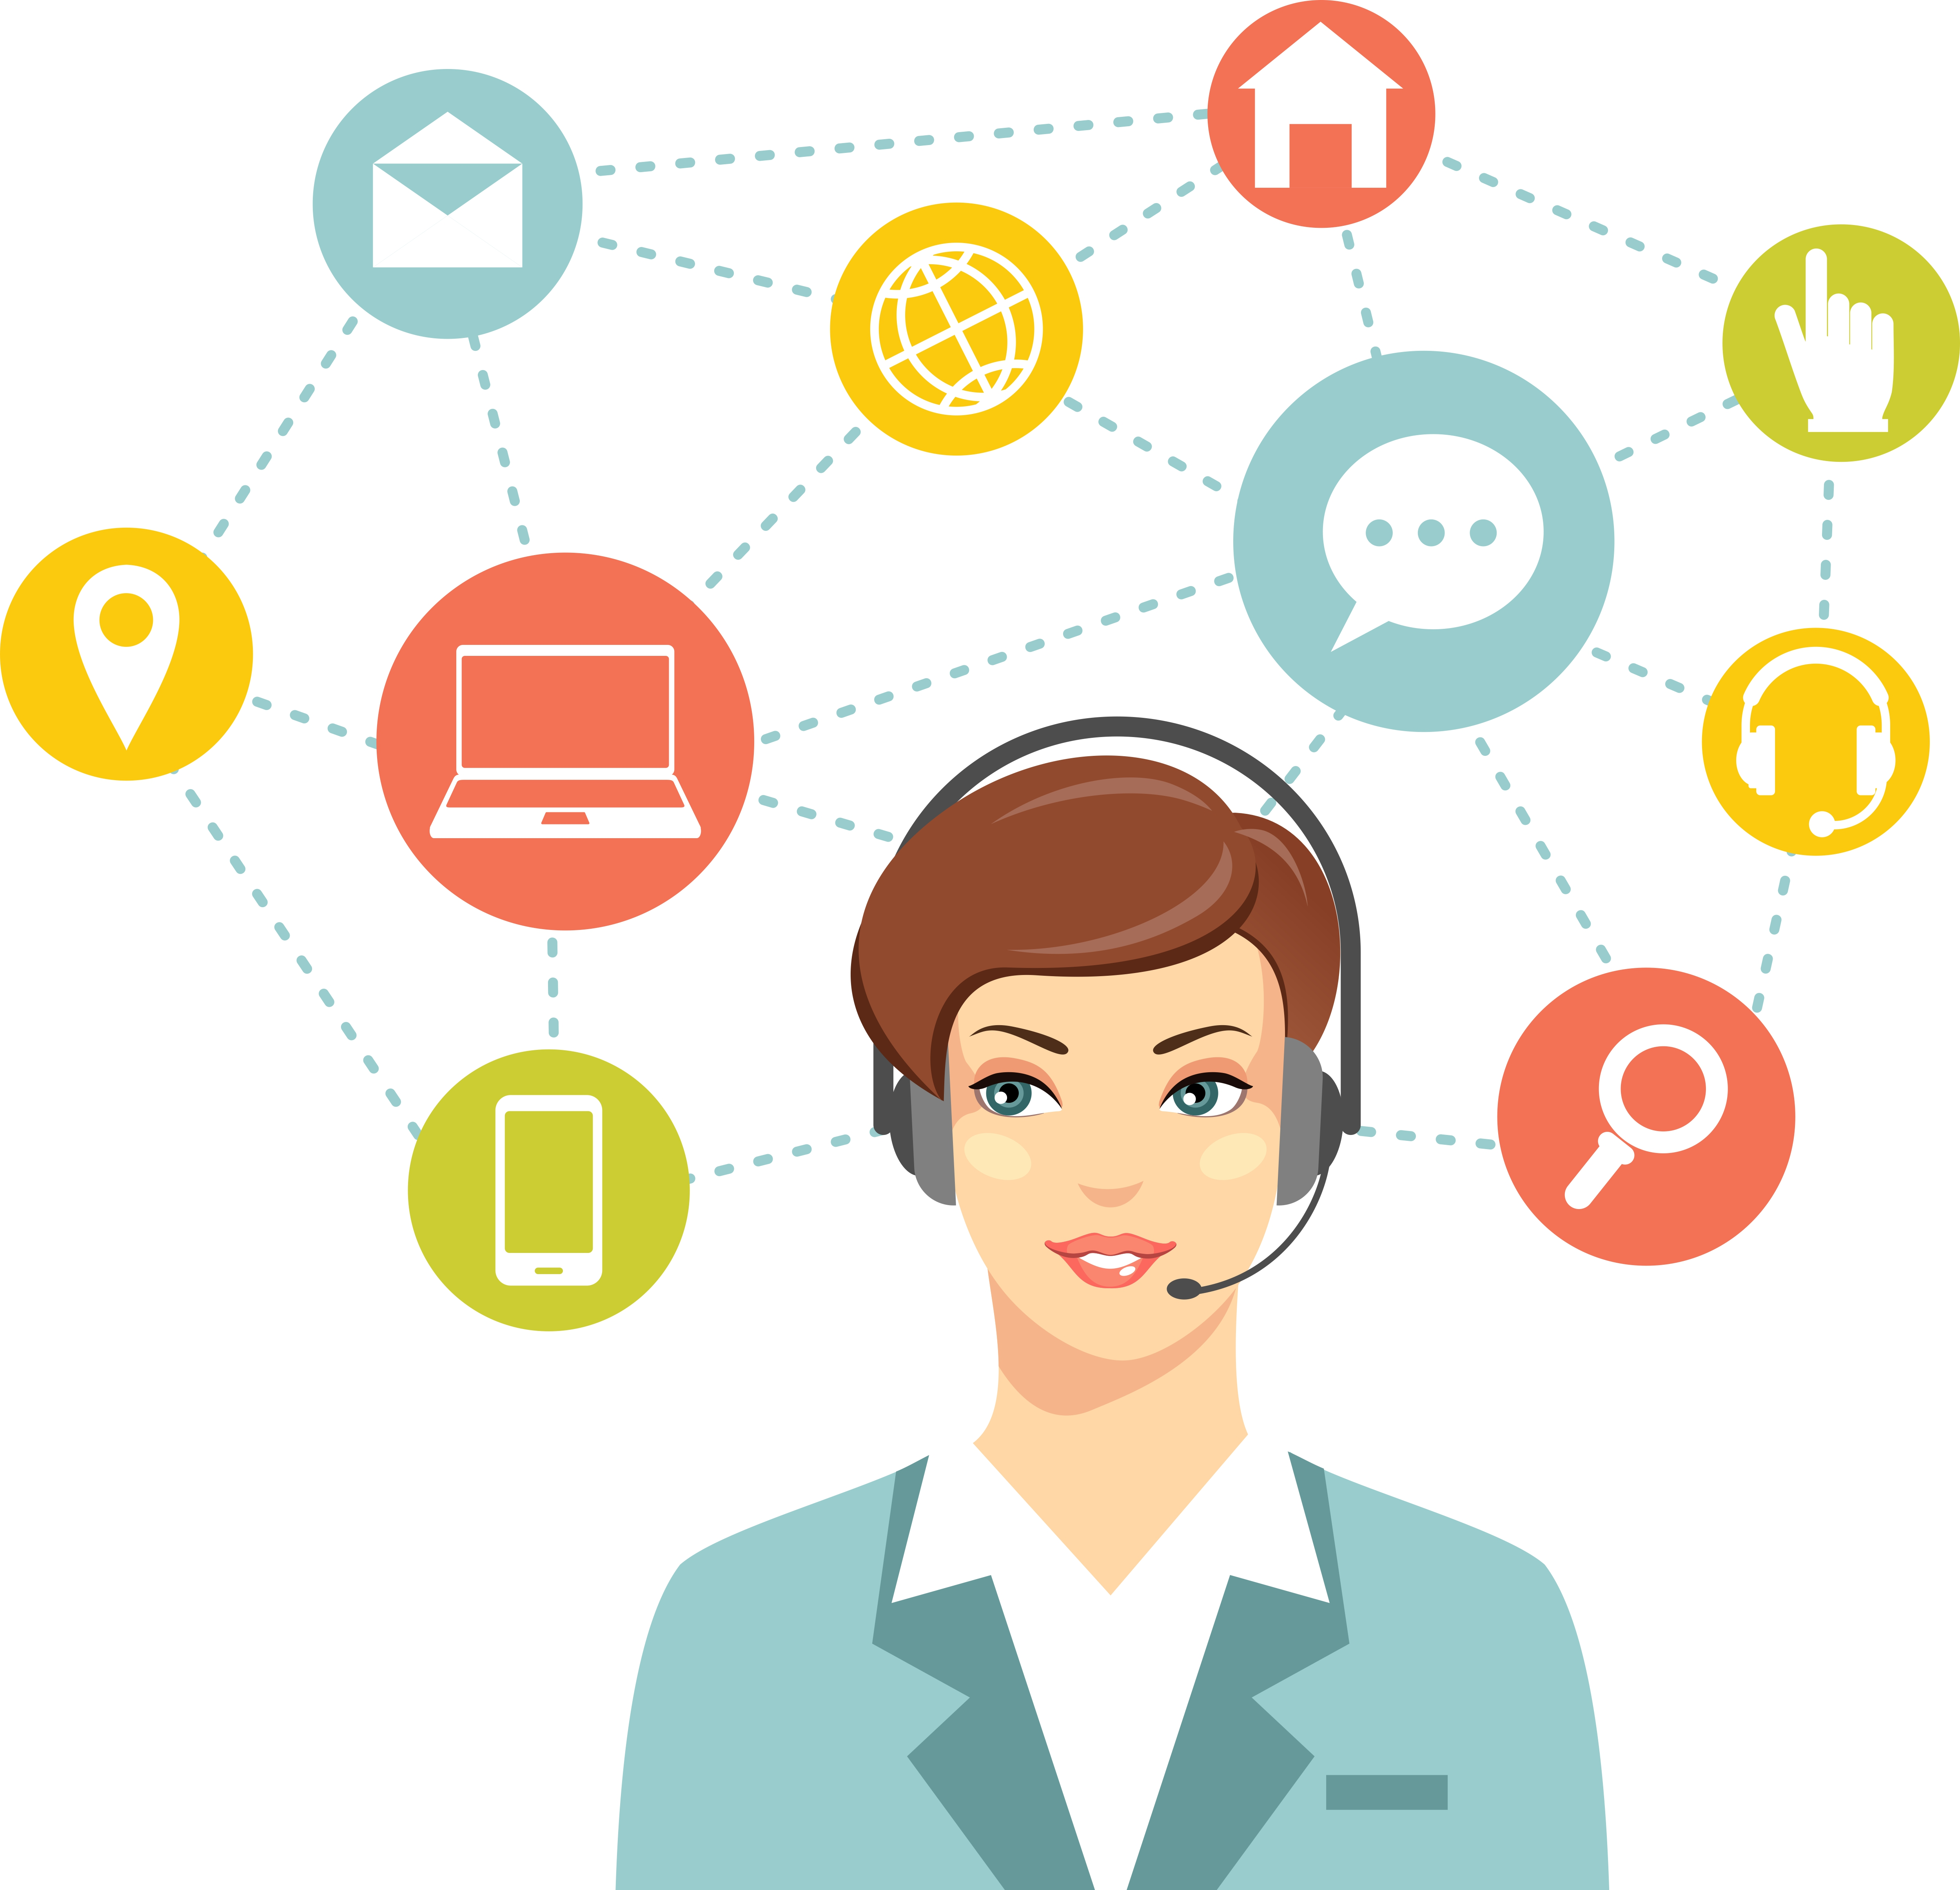 Call center online customer support woman operator concept